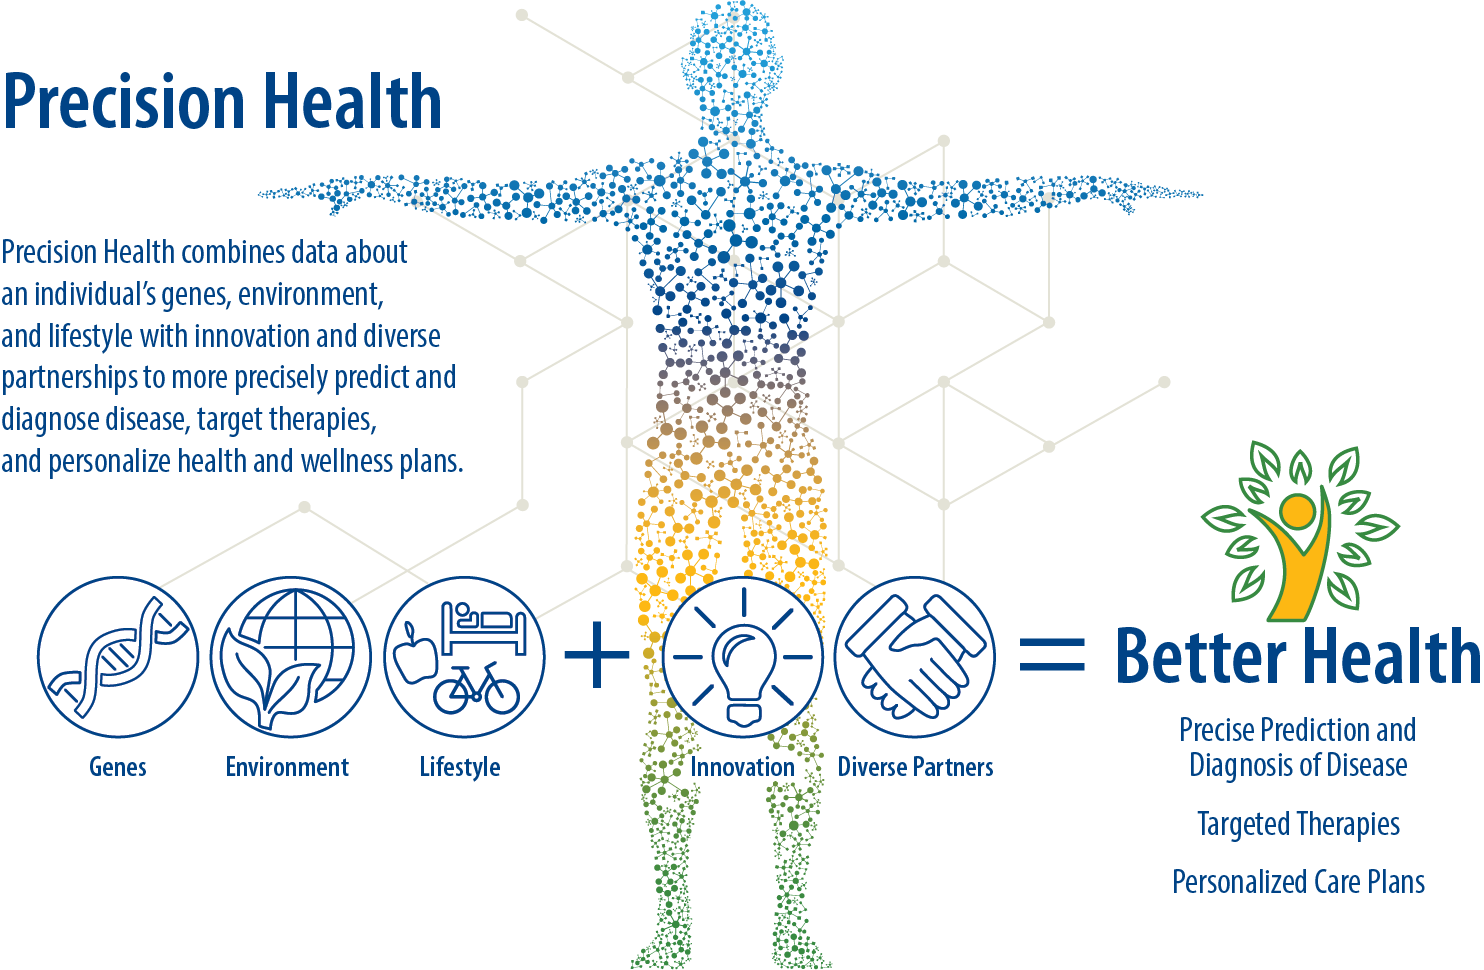 Why is mainstream health adopting Personalized Medicine?